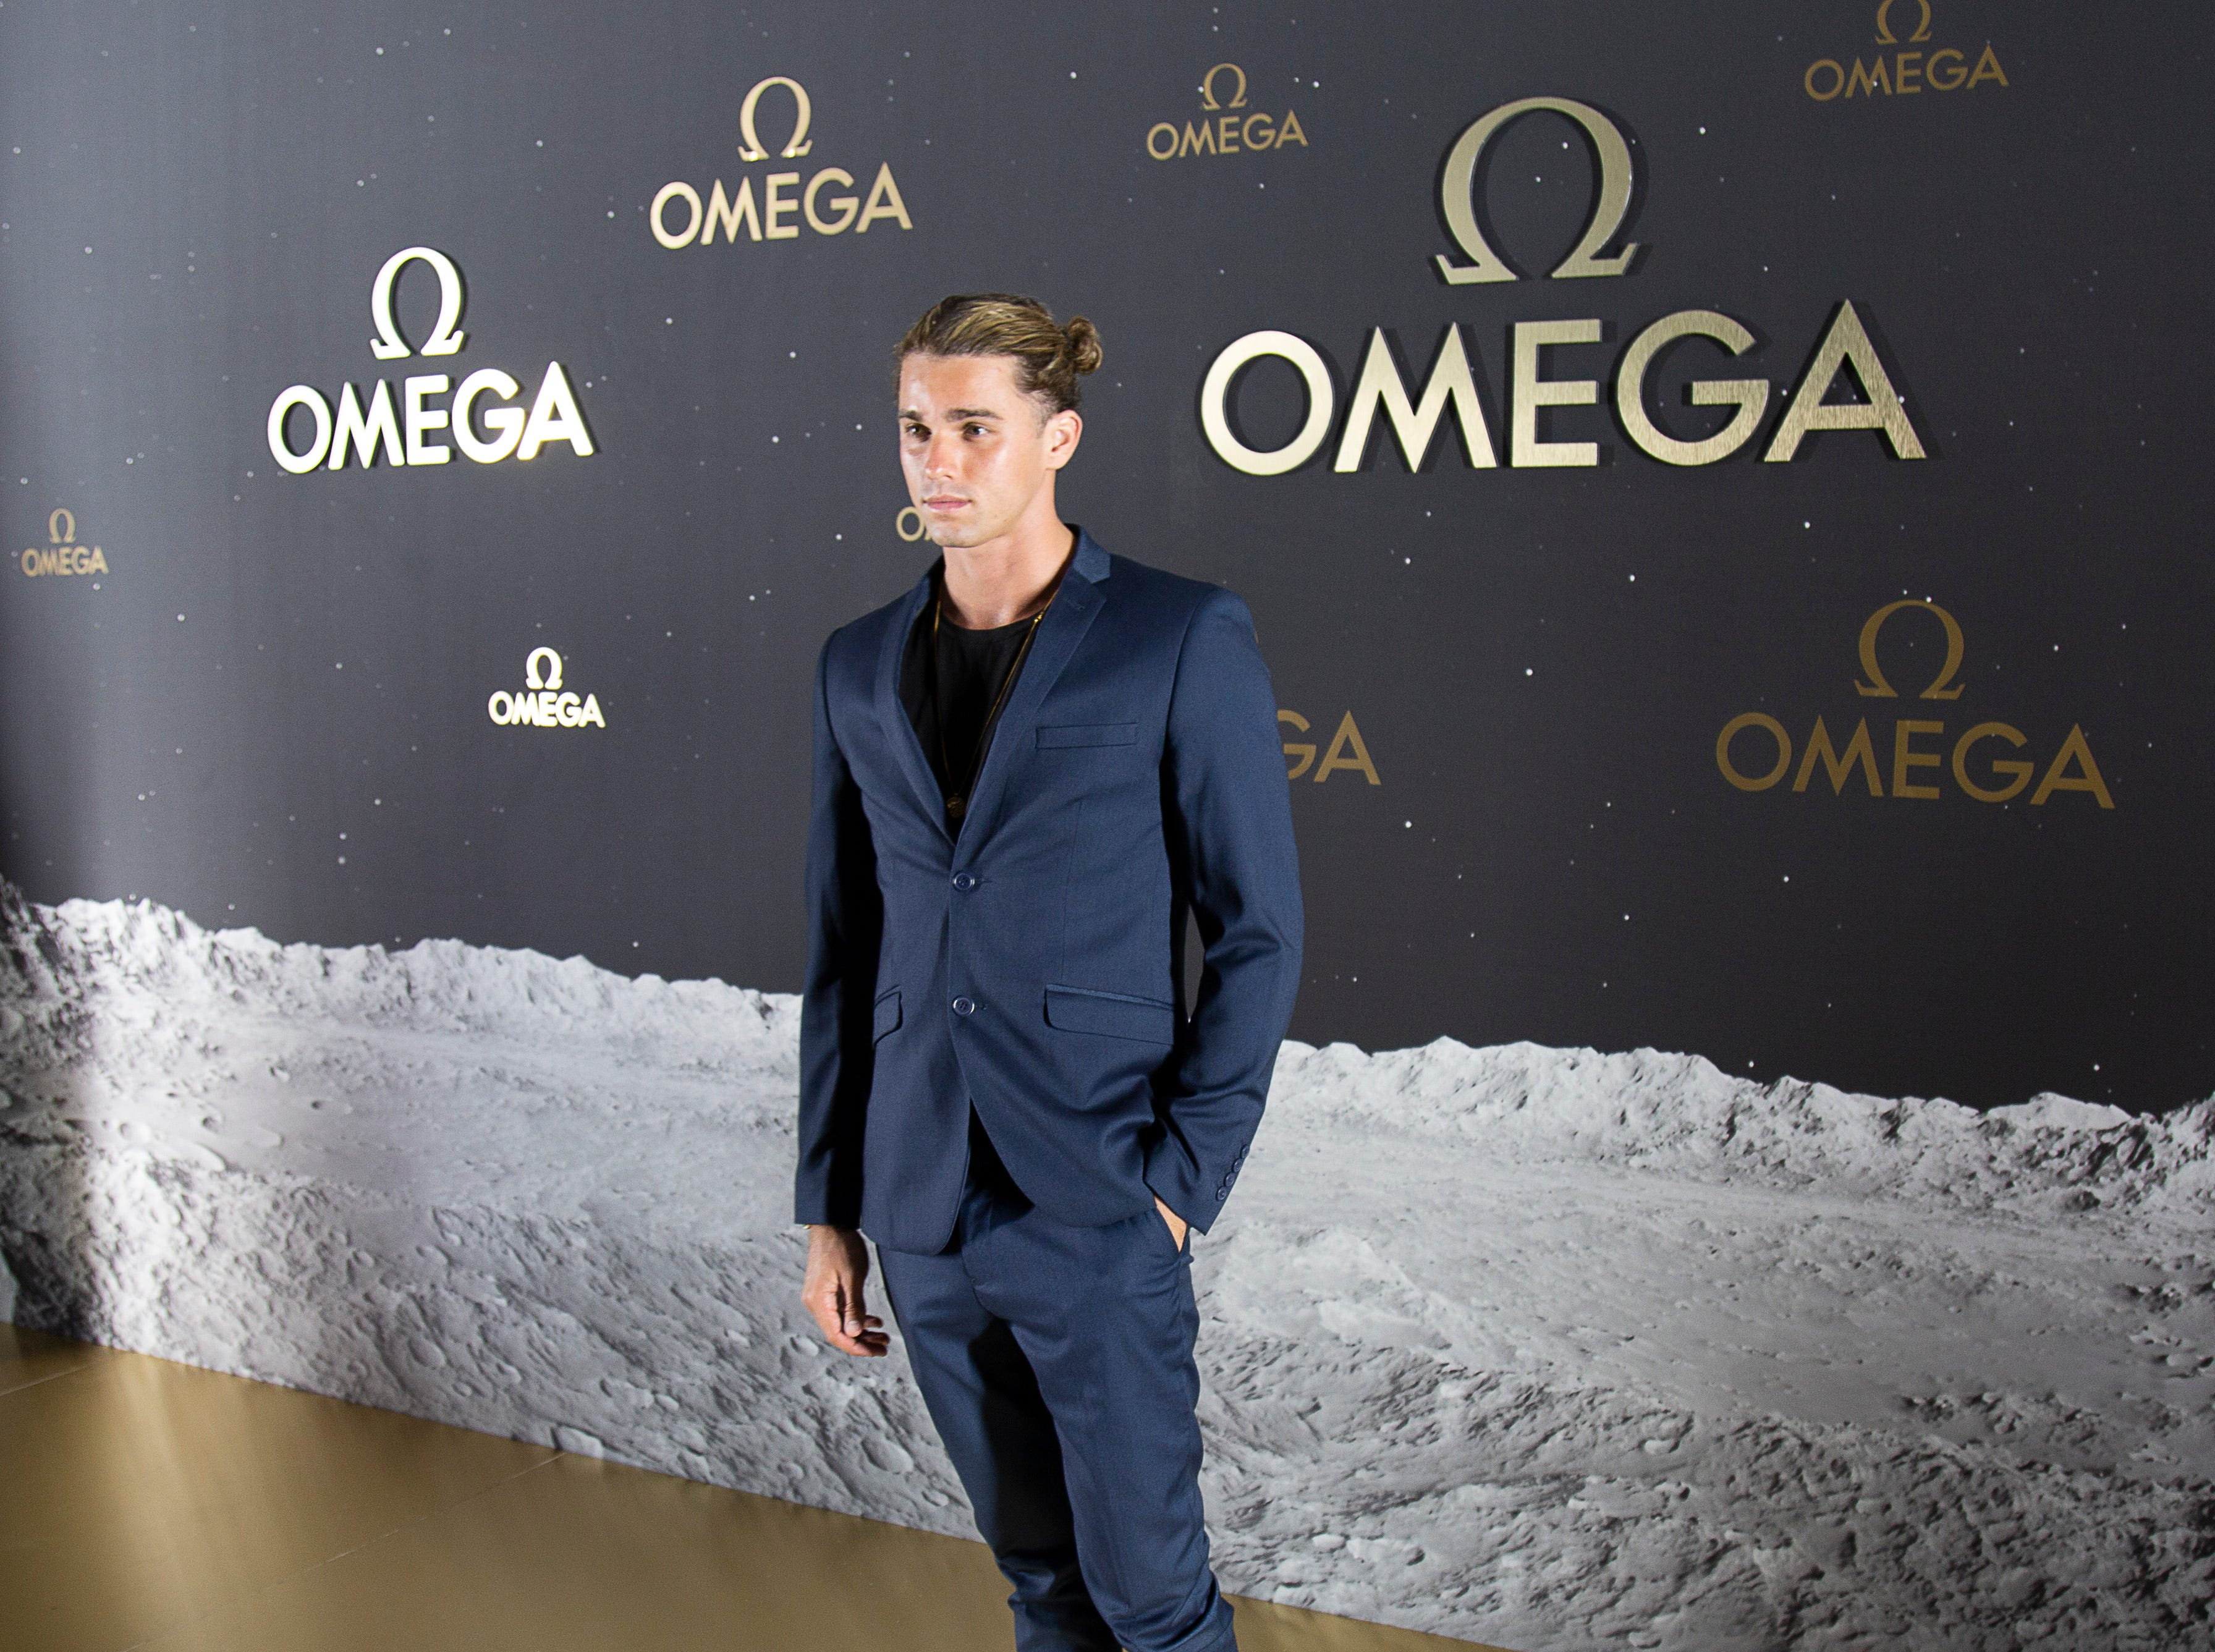 Social media influencer Jay Alvarrez (6 million followers on Instagram and counting). Swiss watch brand Omega, which accompanied Apollo 11 astronaut Buzz Aldrin when he walked on the moon's surface nearly 50 years ago, hosted an event honoring the 50th anniversary of the moon landing at the Apollo/Saturn V Center at Kennedy Space Center. George Clooney and Amal Clooney, as well as former astronauts Thomas Stafford and Charles Moss Duke, attended.